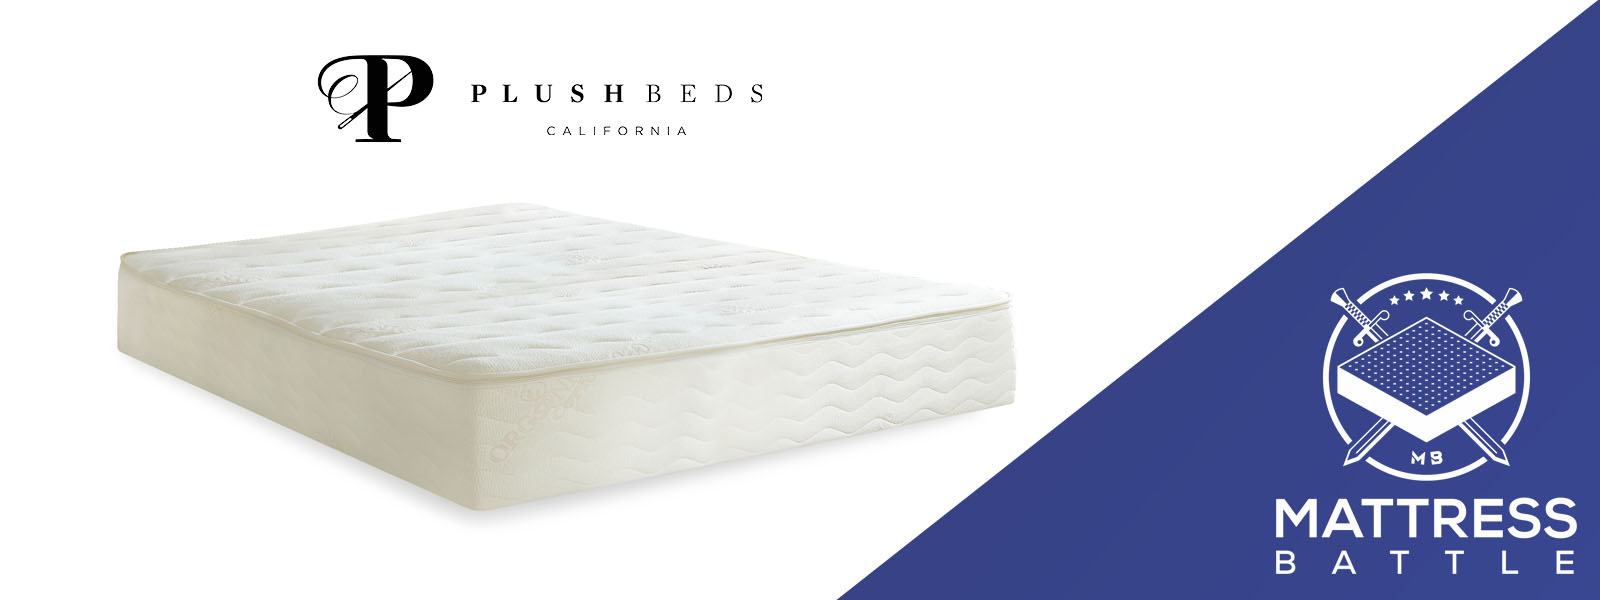 Plushbeds Review We Tested It And Here S What We Learned